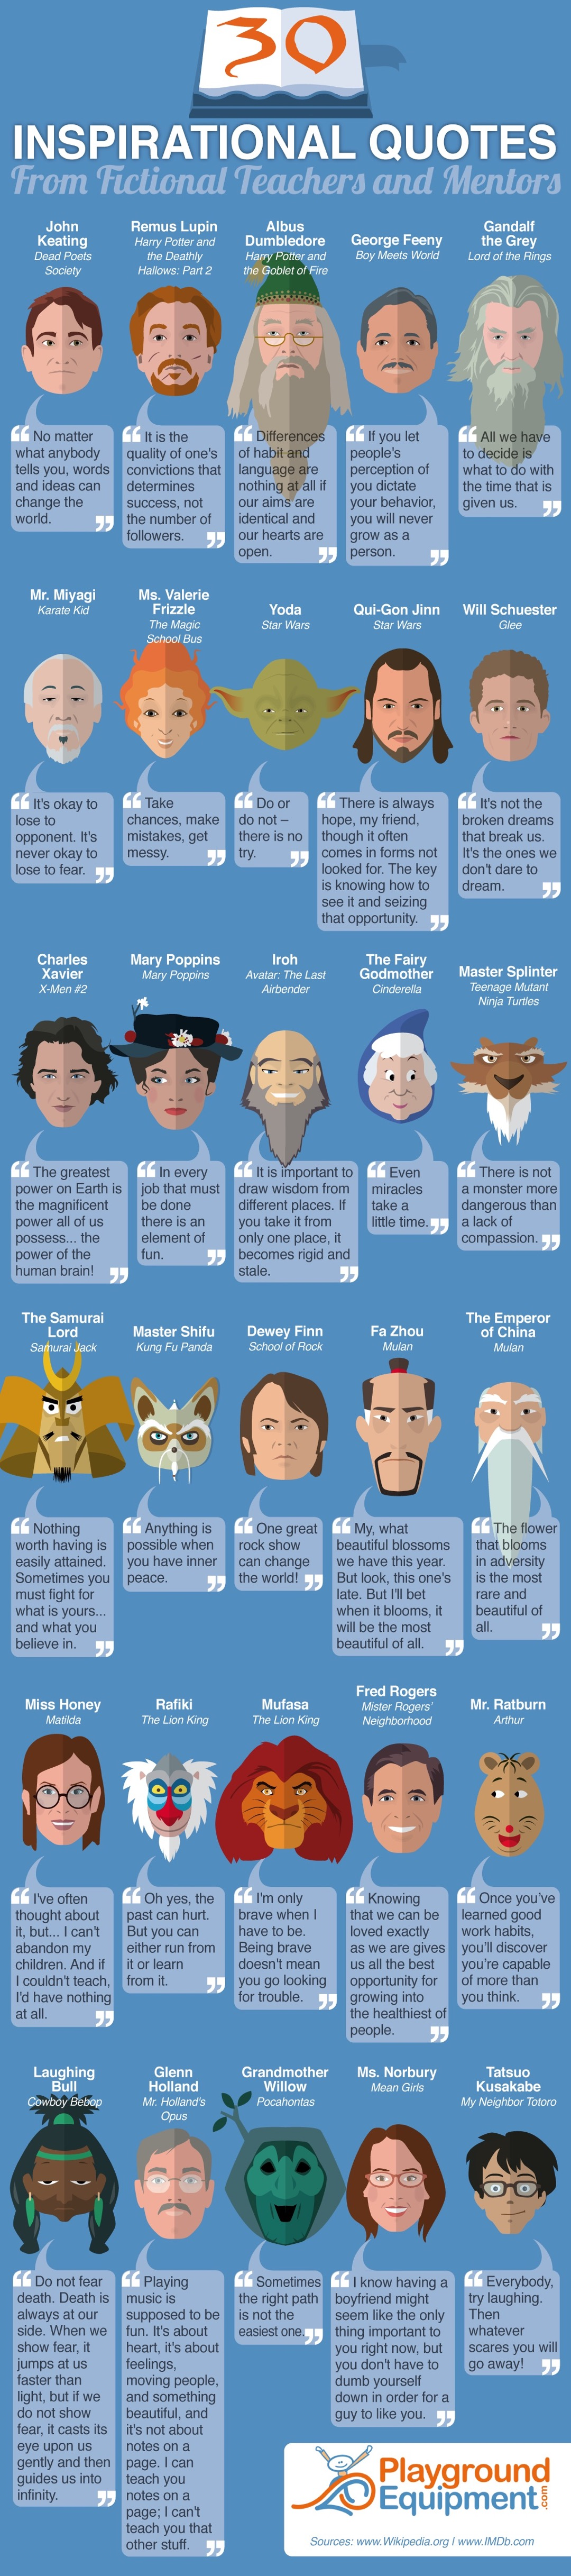 List Of Inspirational Quotes About Life Get Inspiredthese Quotes From 30 Wise Pop Culture Characters